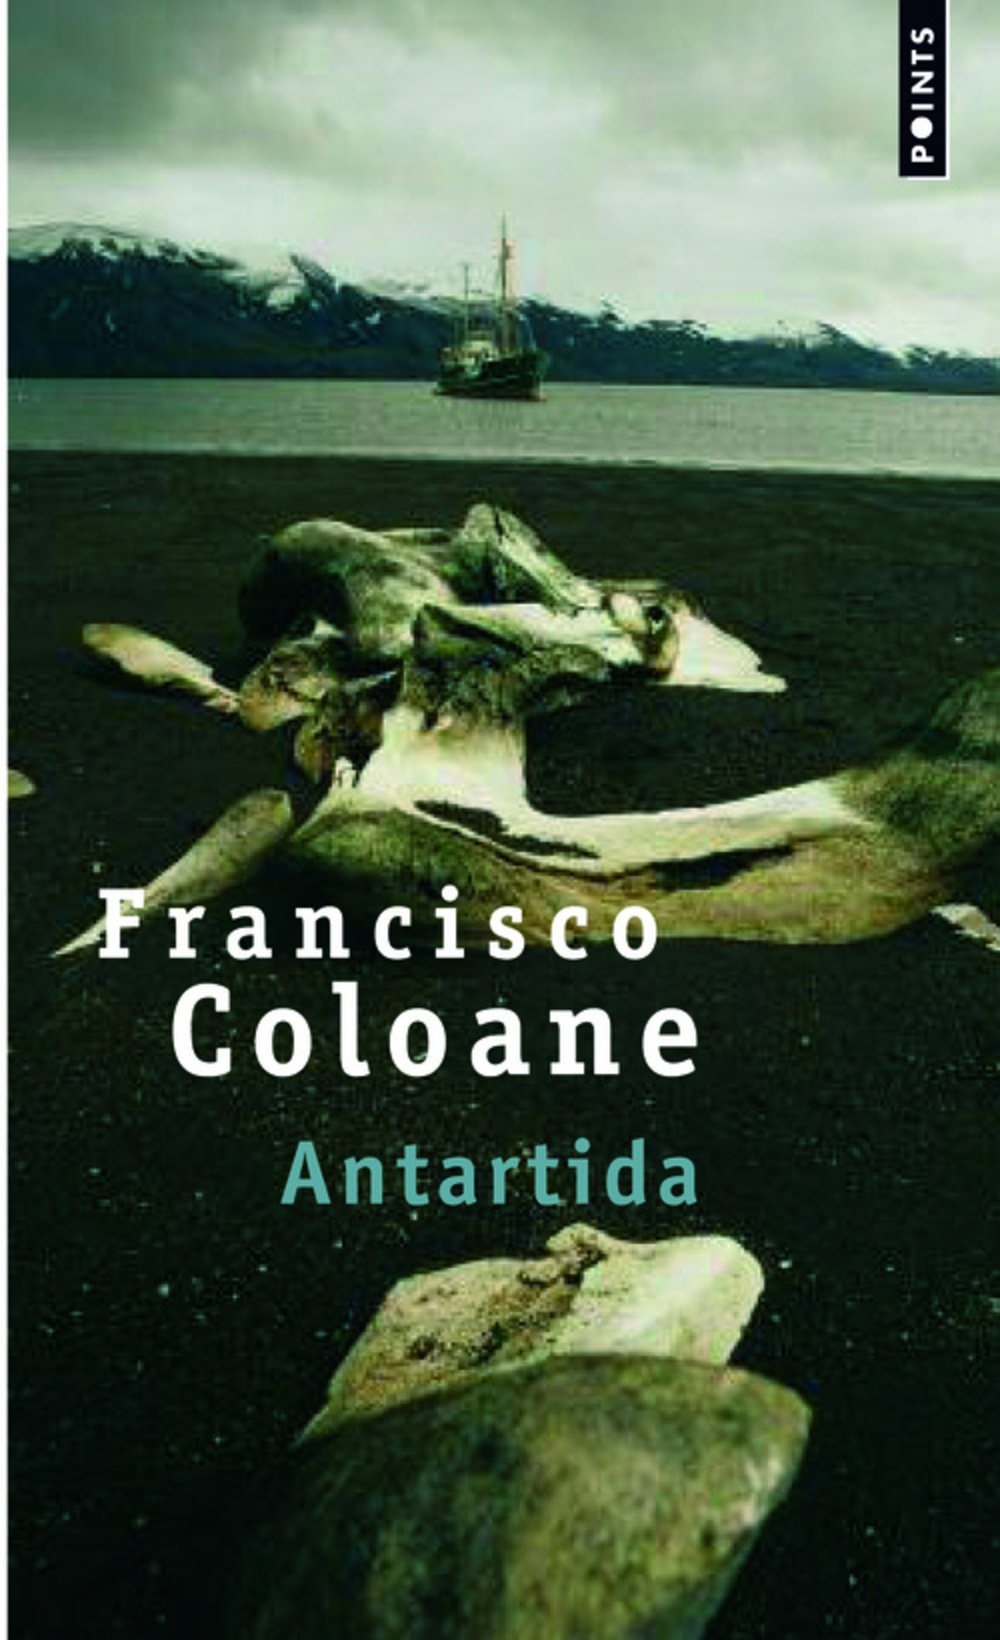 Antartida - Francisco Coloane